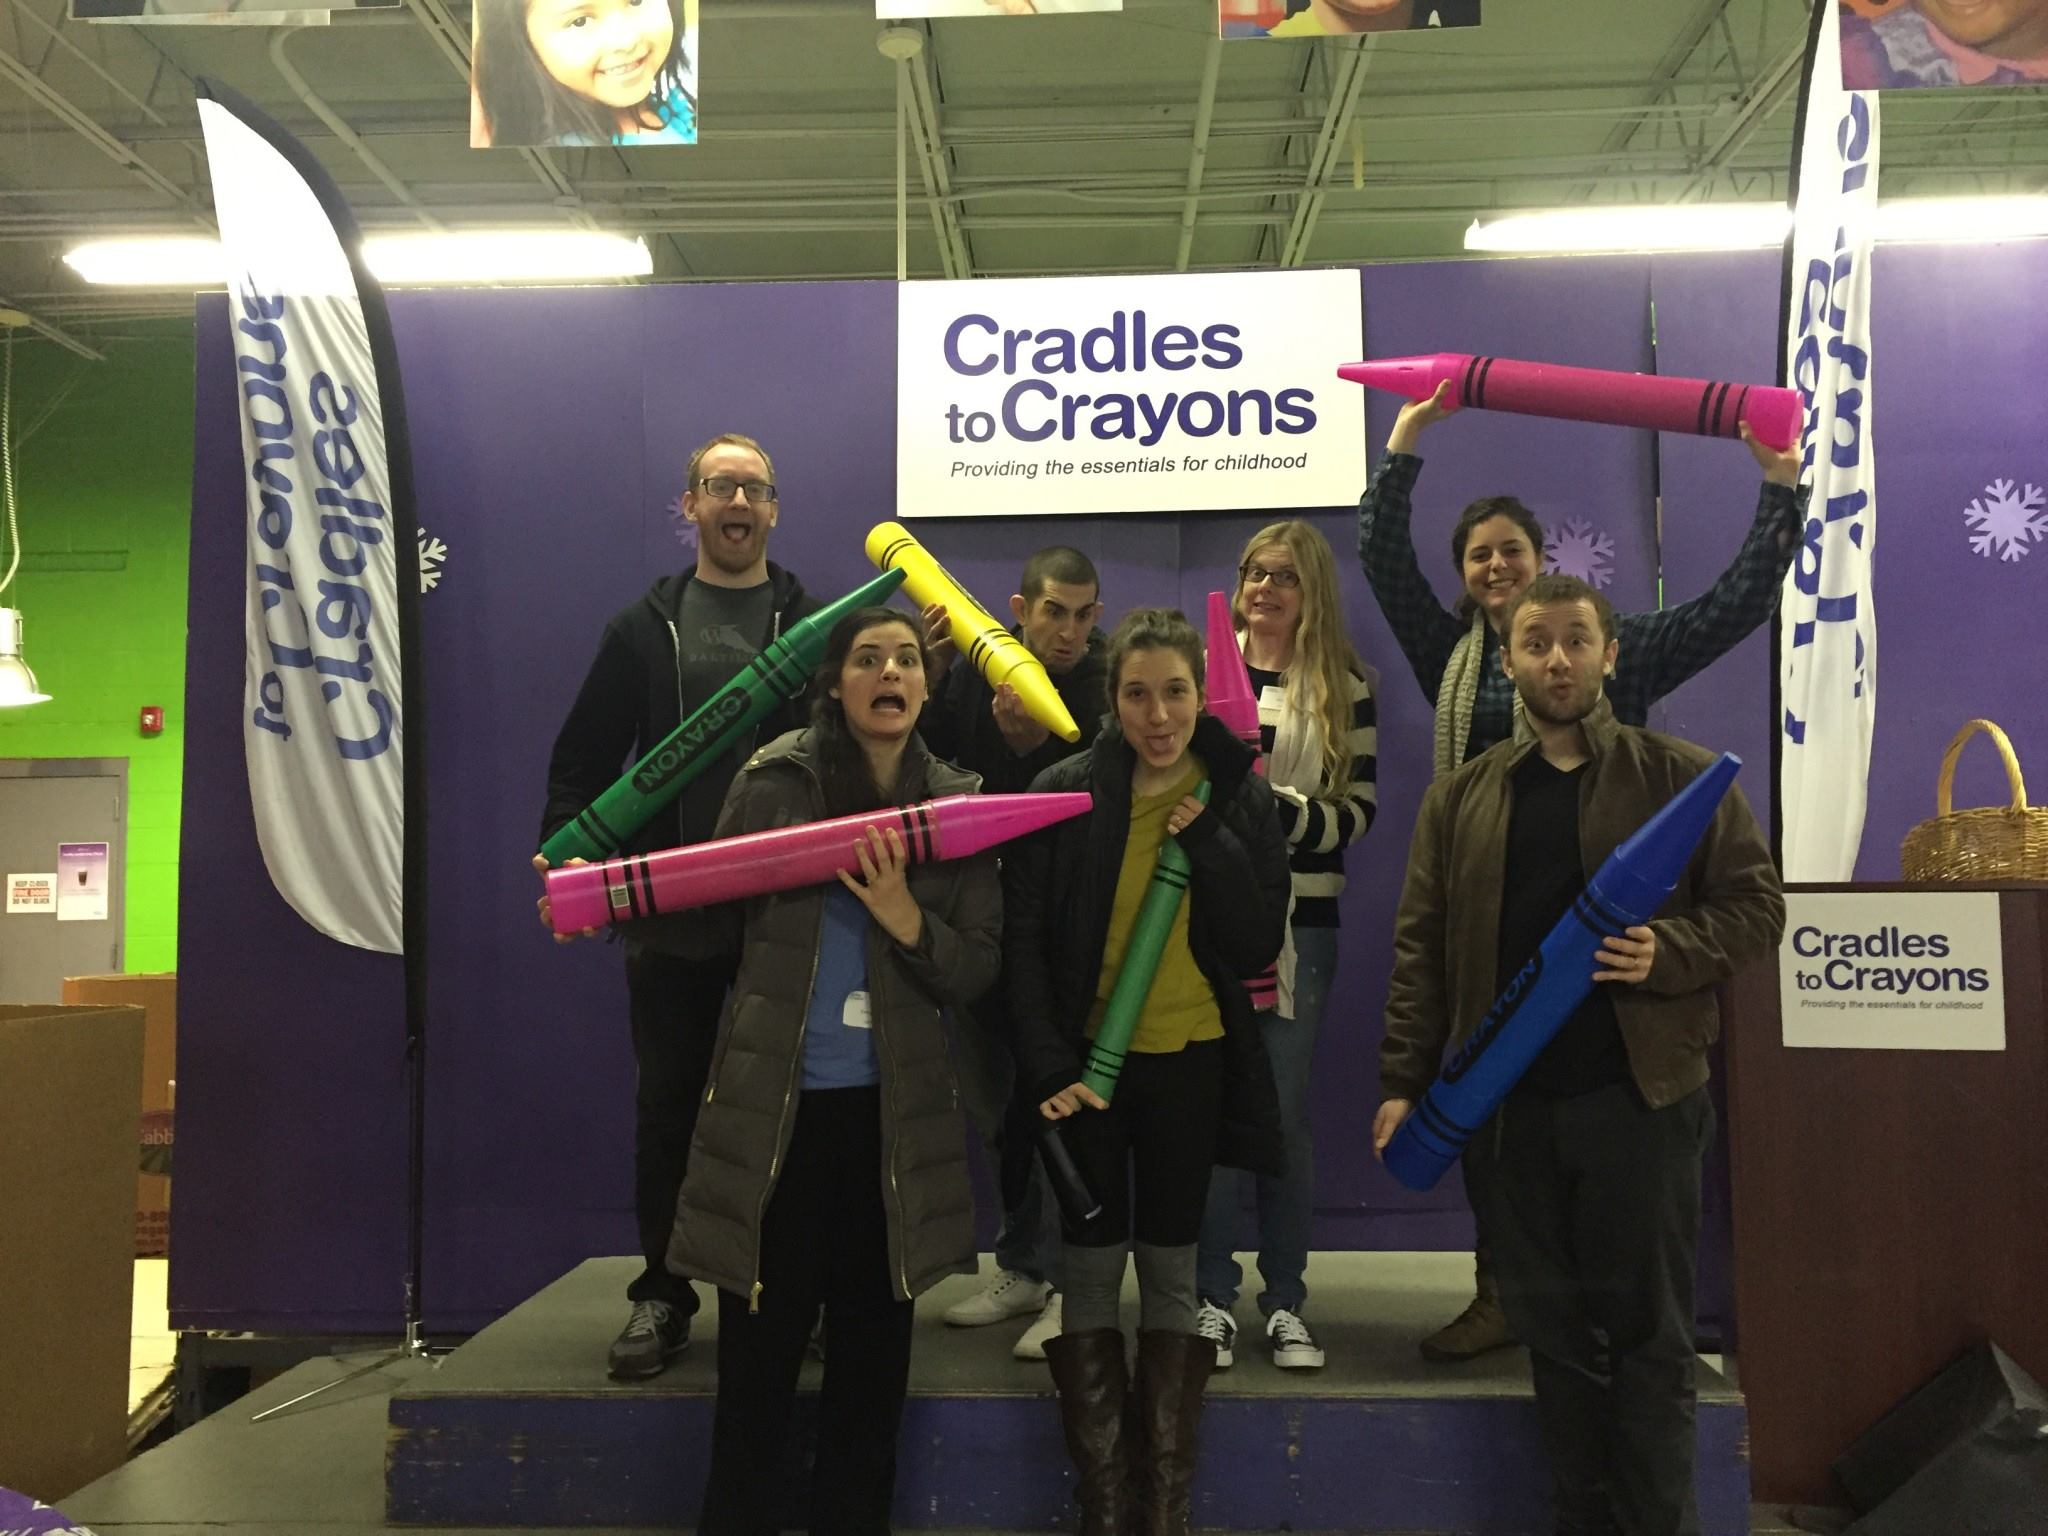 Volunteering with cradles to crayons